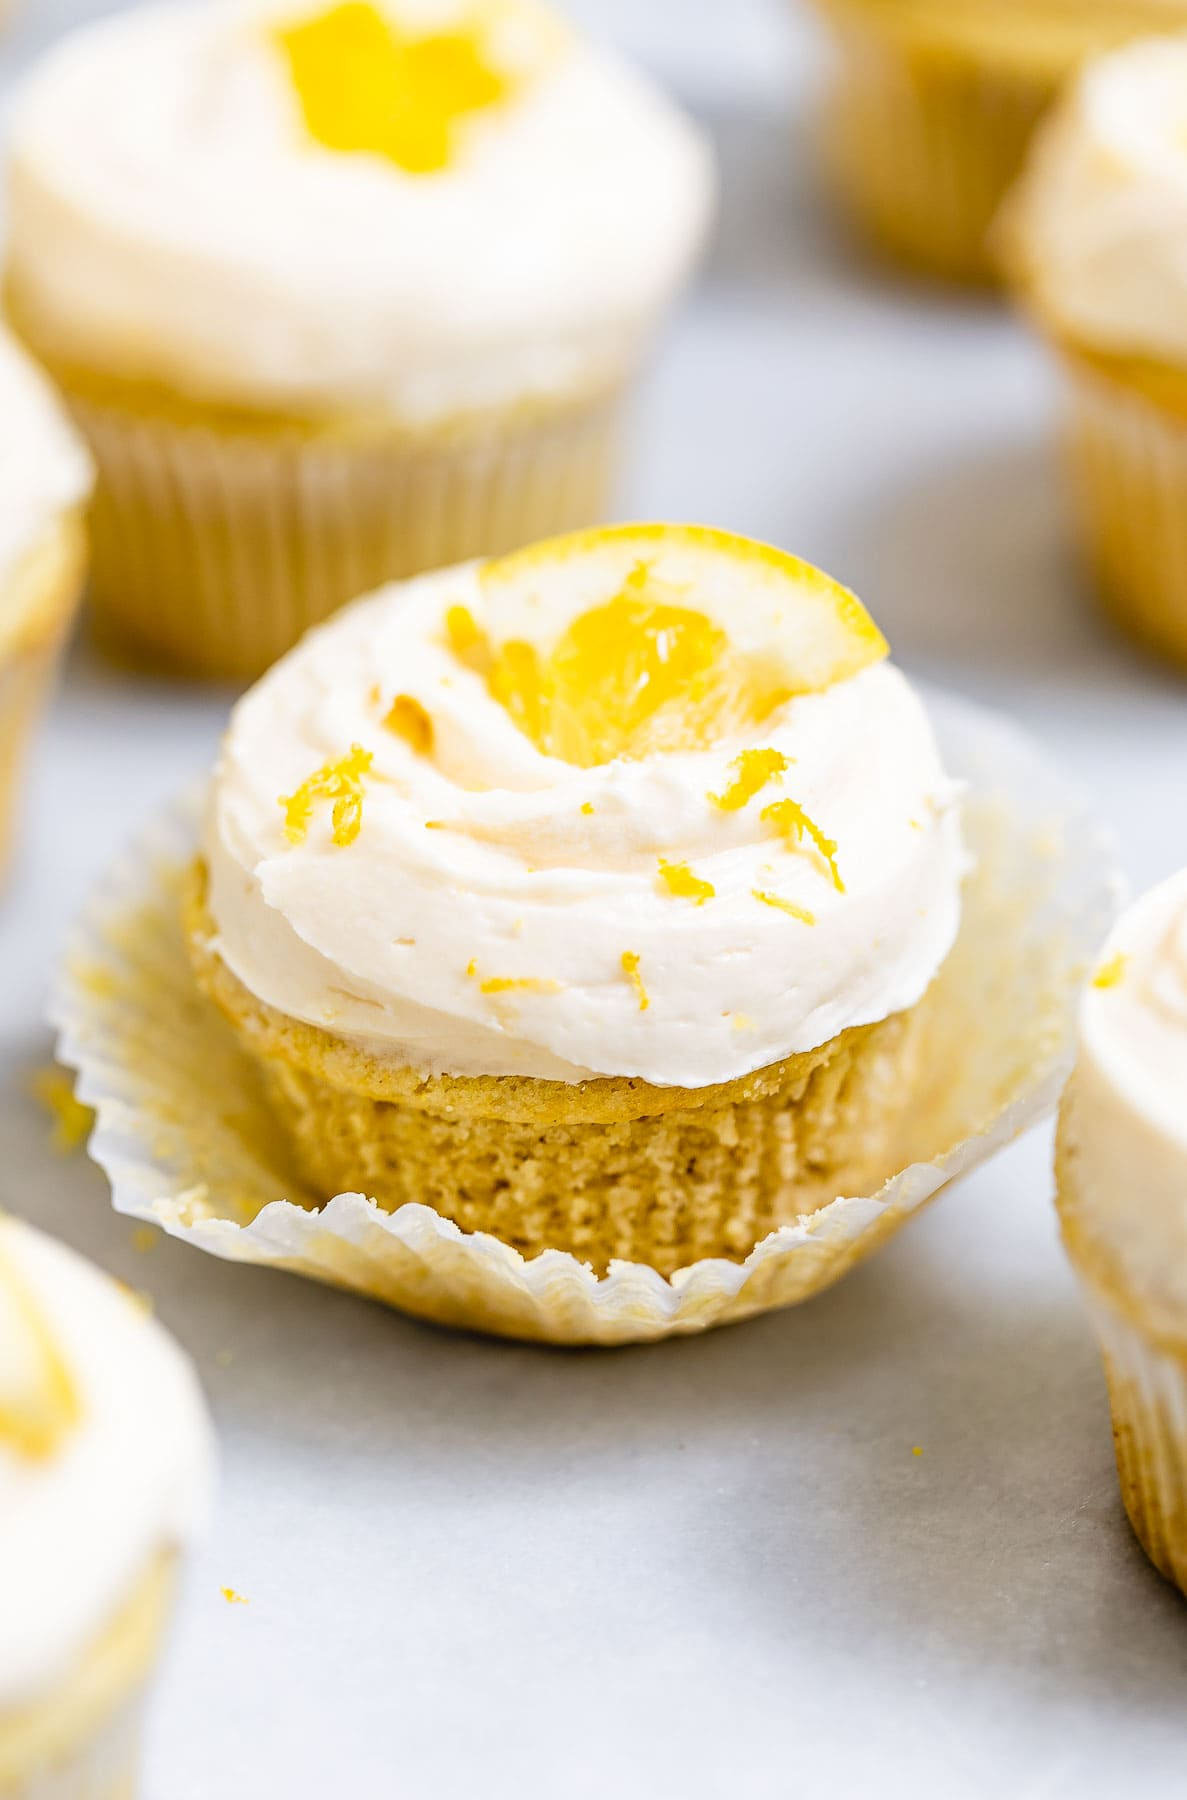 Vegan cupcakes arranged on a white backdrop with lemon wedges on top.